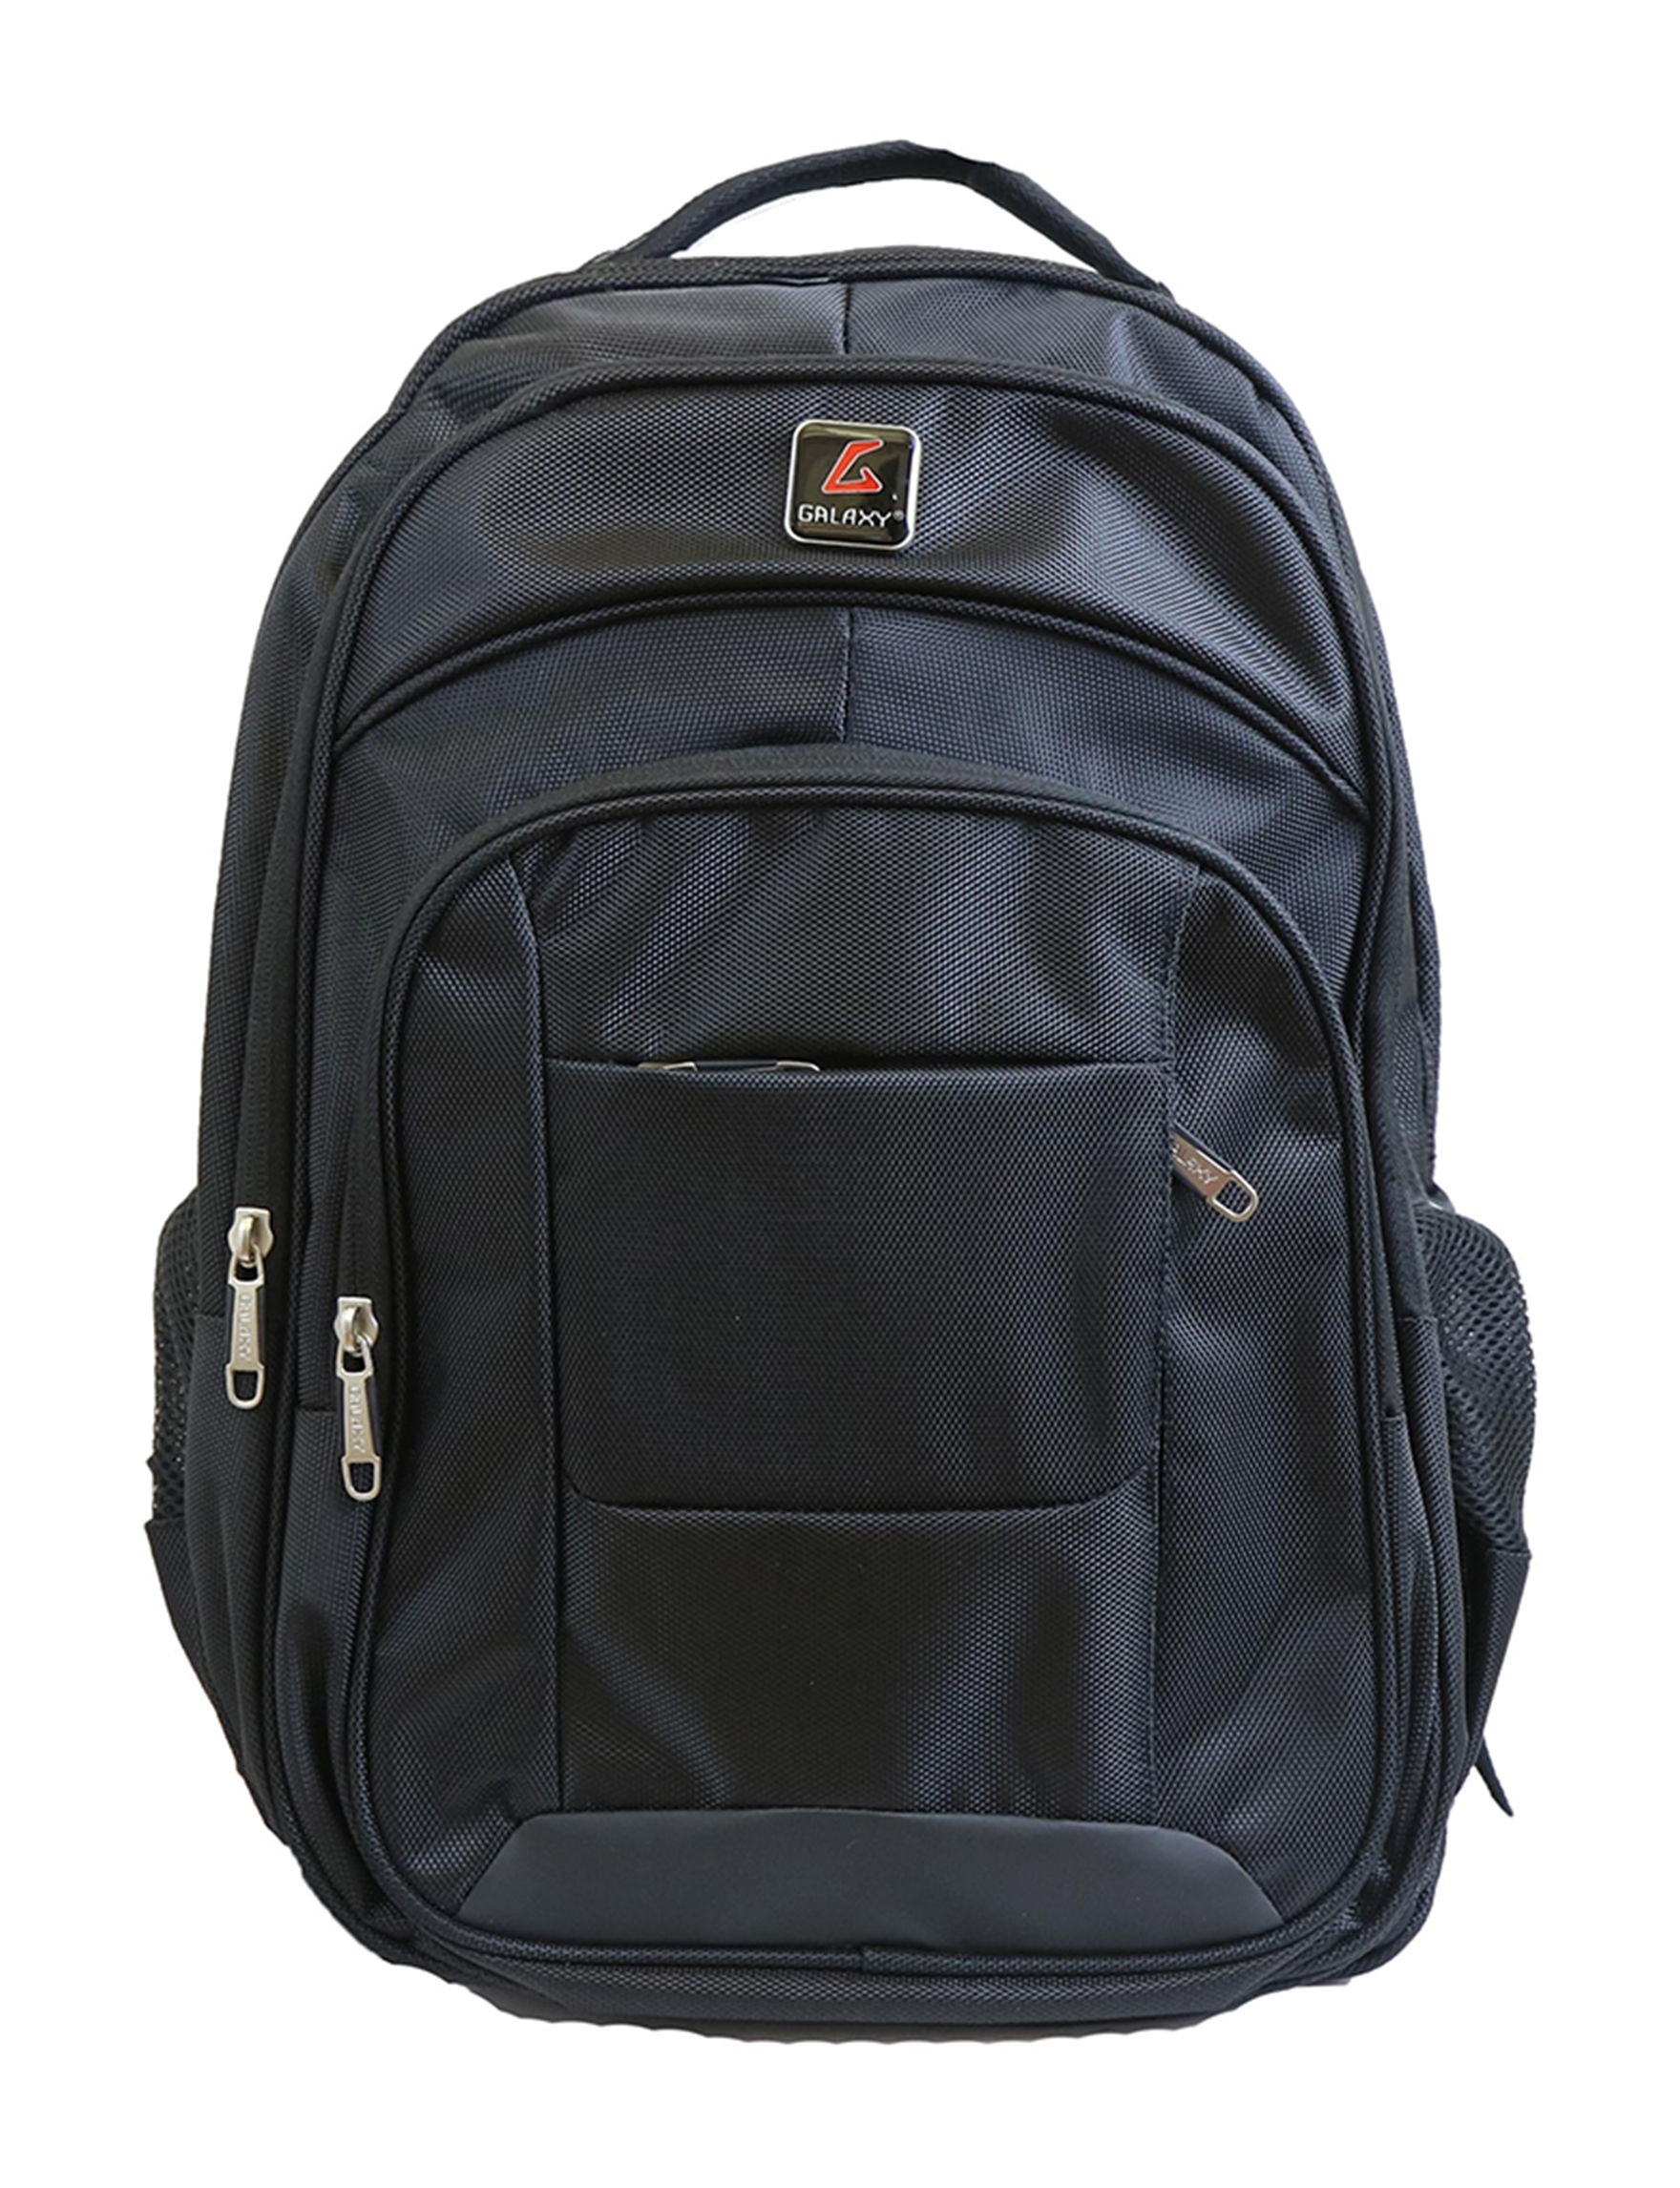 Galaxy by Harvic Black Bookbags & Backpacks